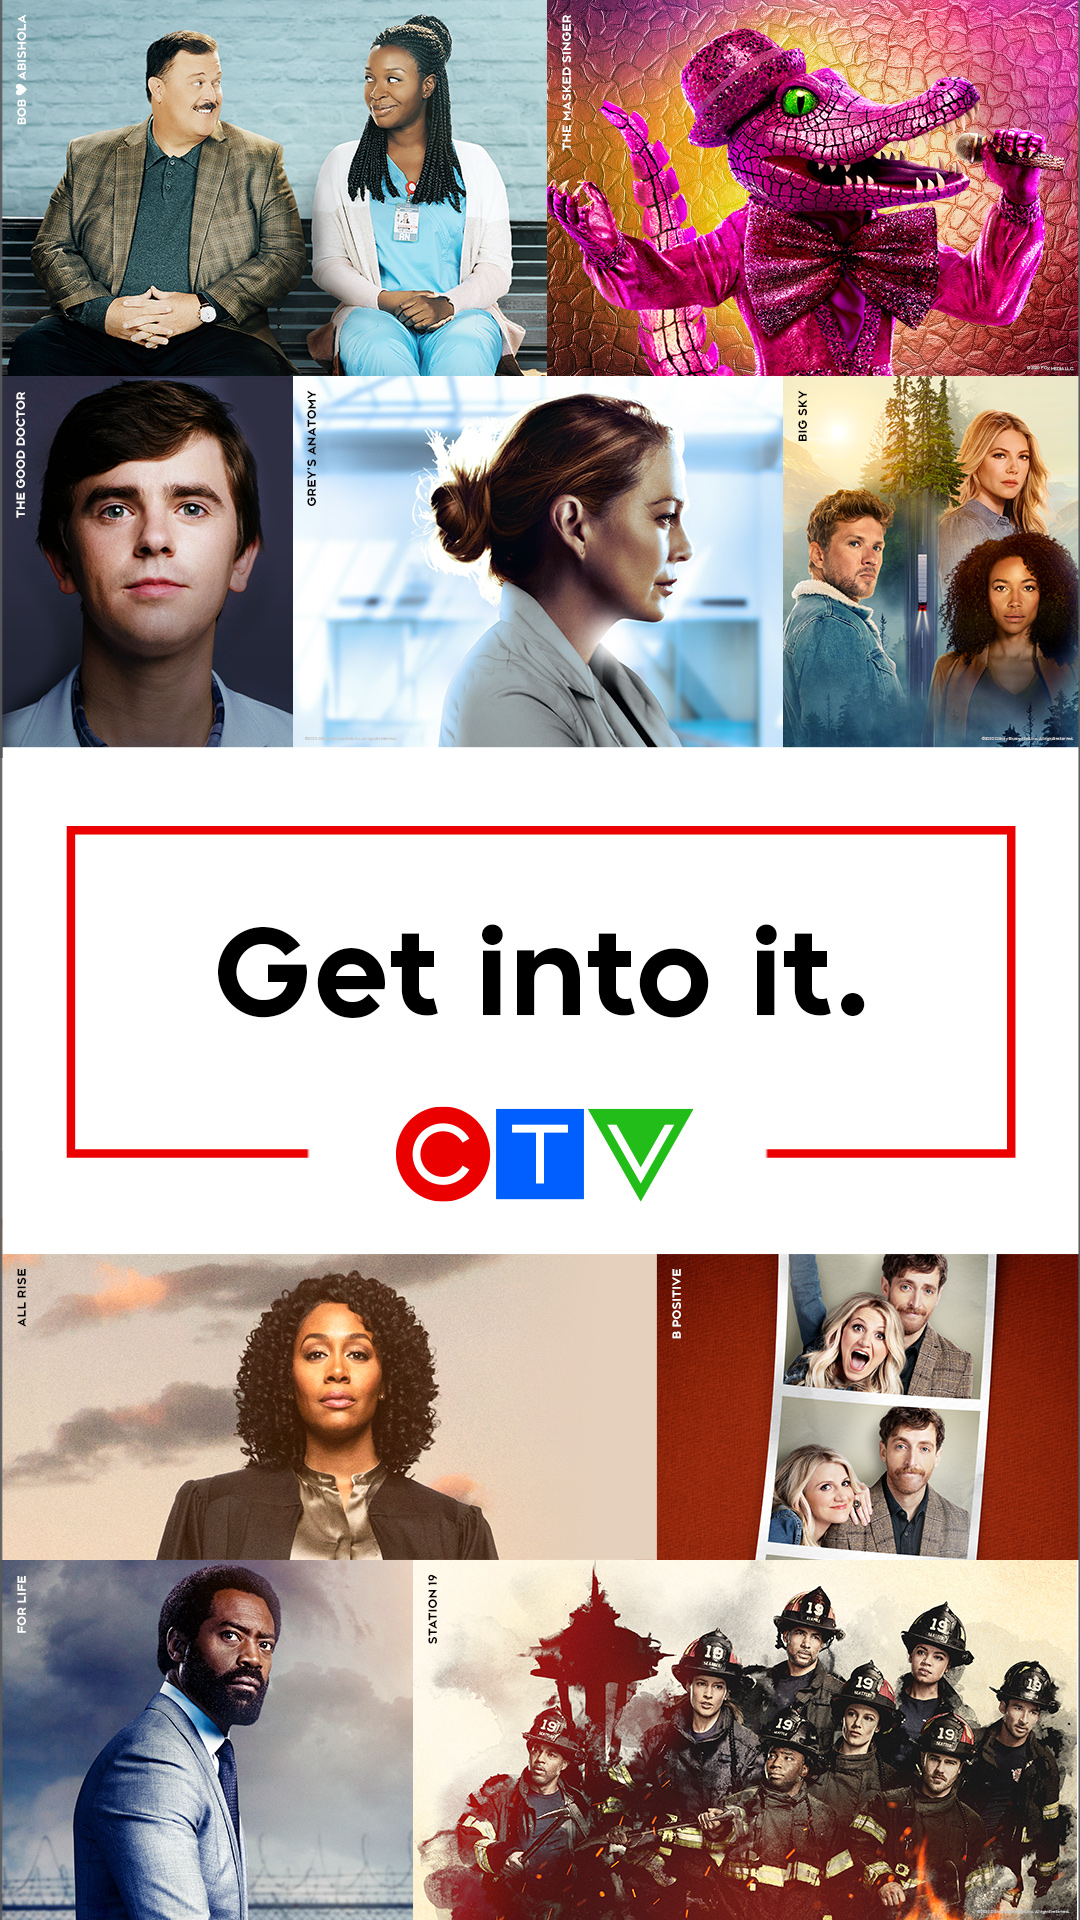 Ad for CTV's TV programming